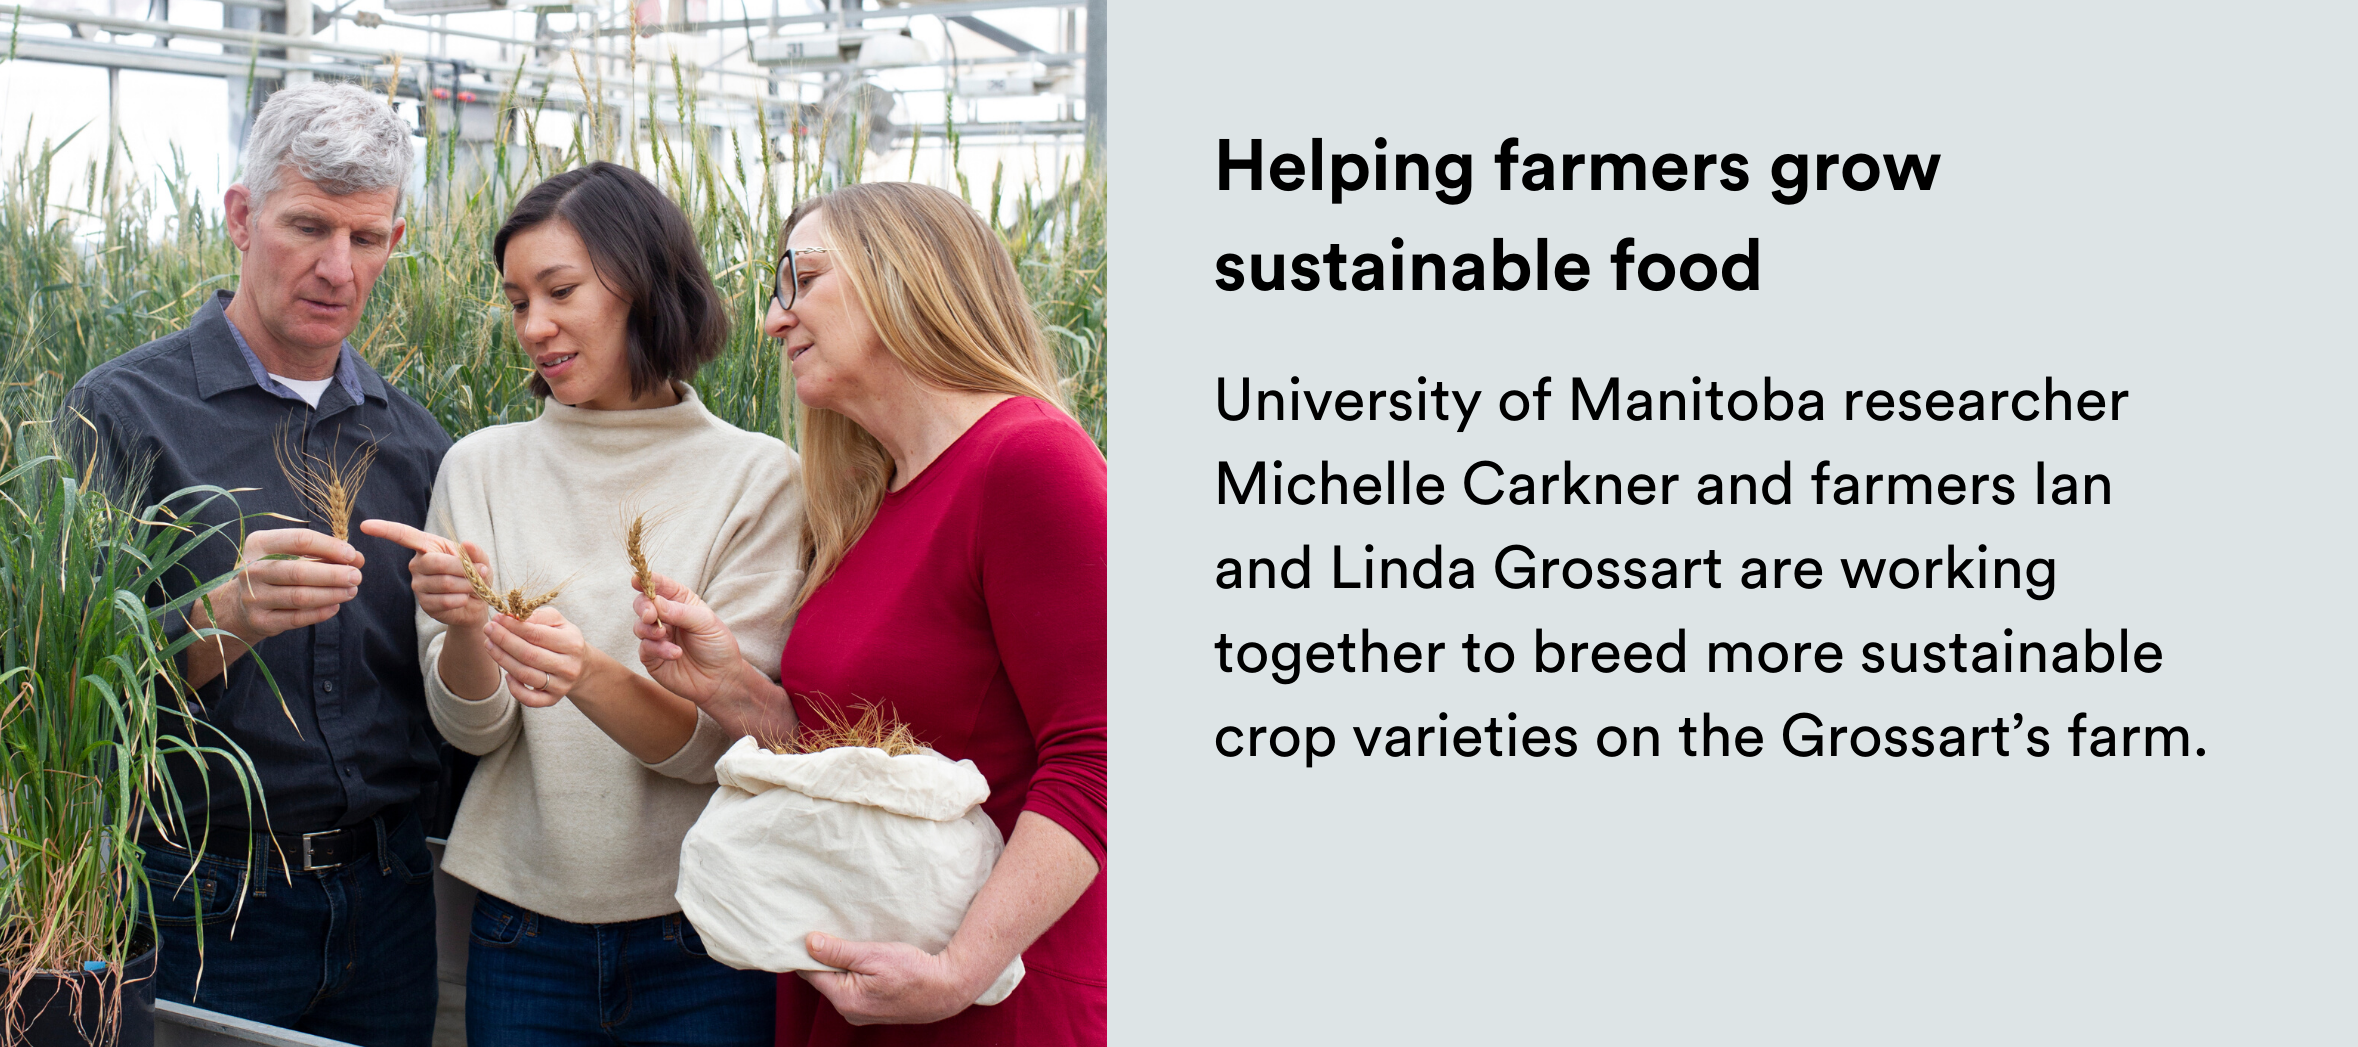 Image: A man and two women standing in a greenhouse looking at a piece of wheat. Text: University of Manitoba researcher Michelle Carkner and farmers Ian and Linda Grossart are working together to breed more sustainable crop varieties on the Grossart's farm.